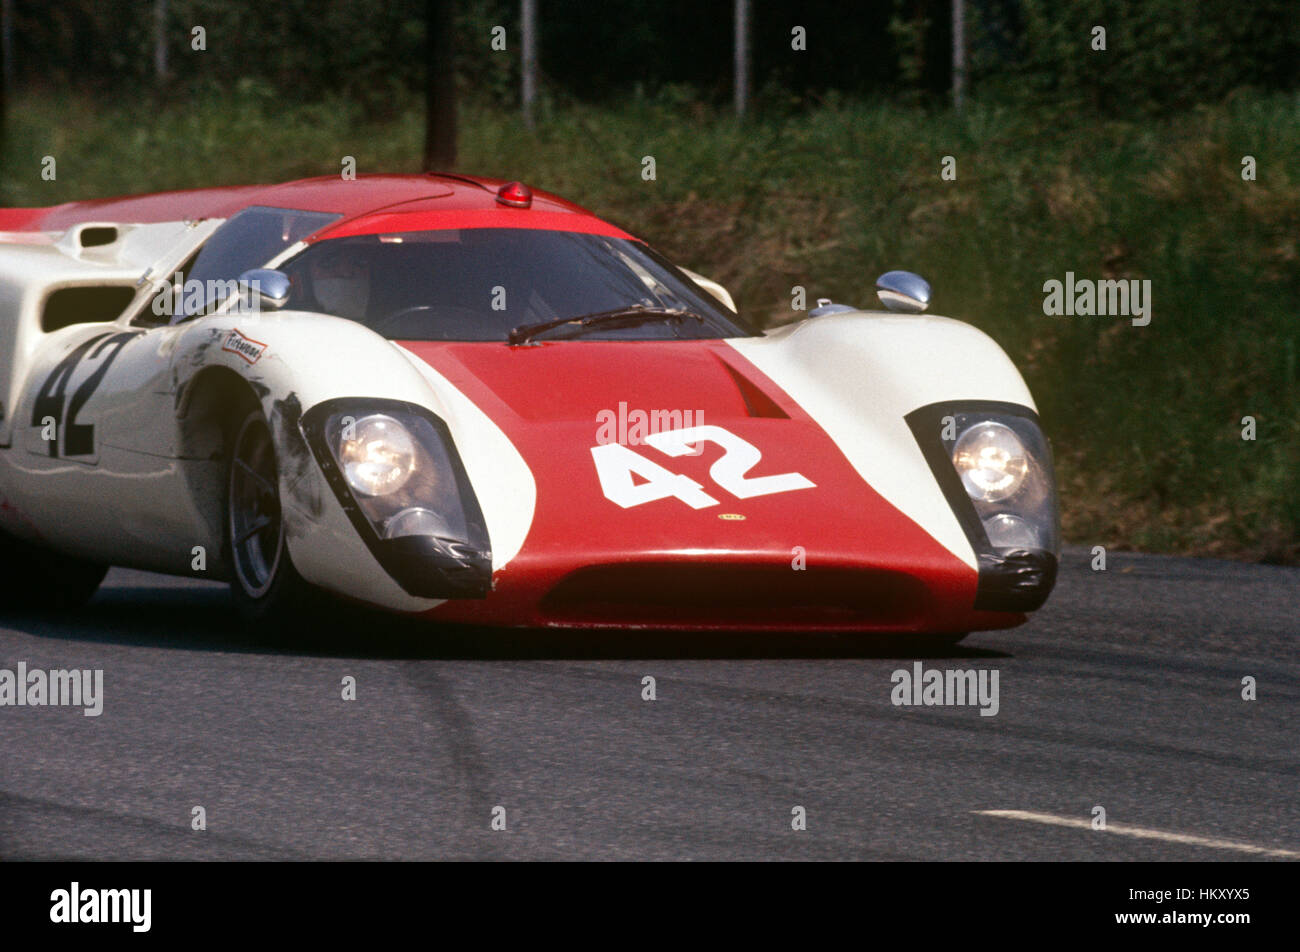 1969 Lola T70 sports car on track - Stock Image